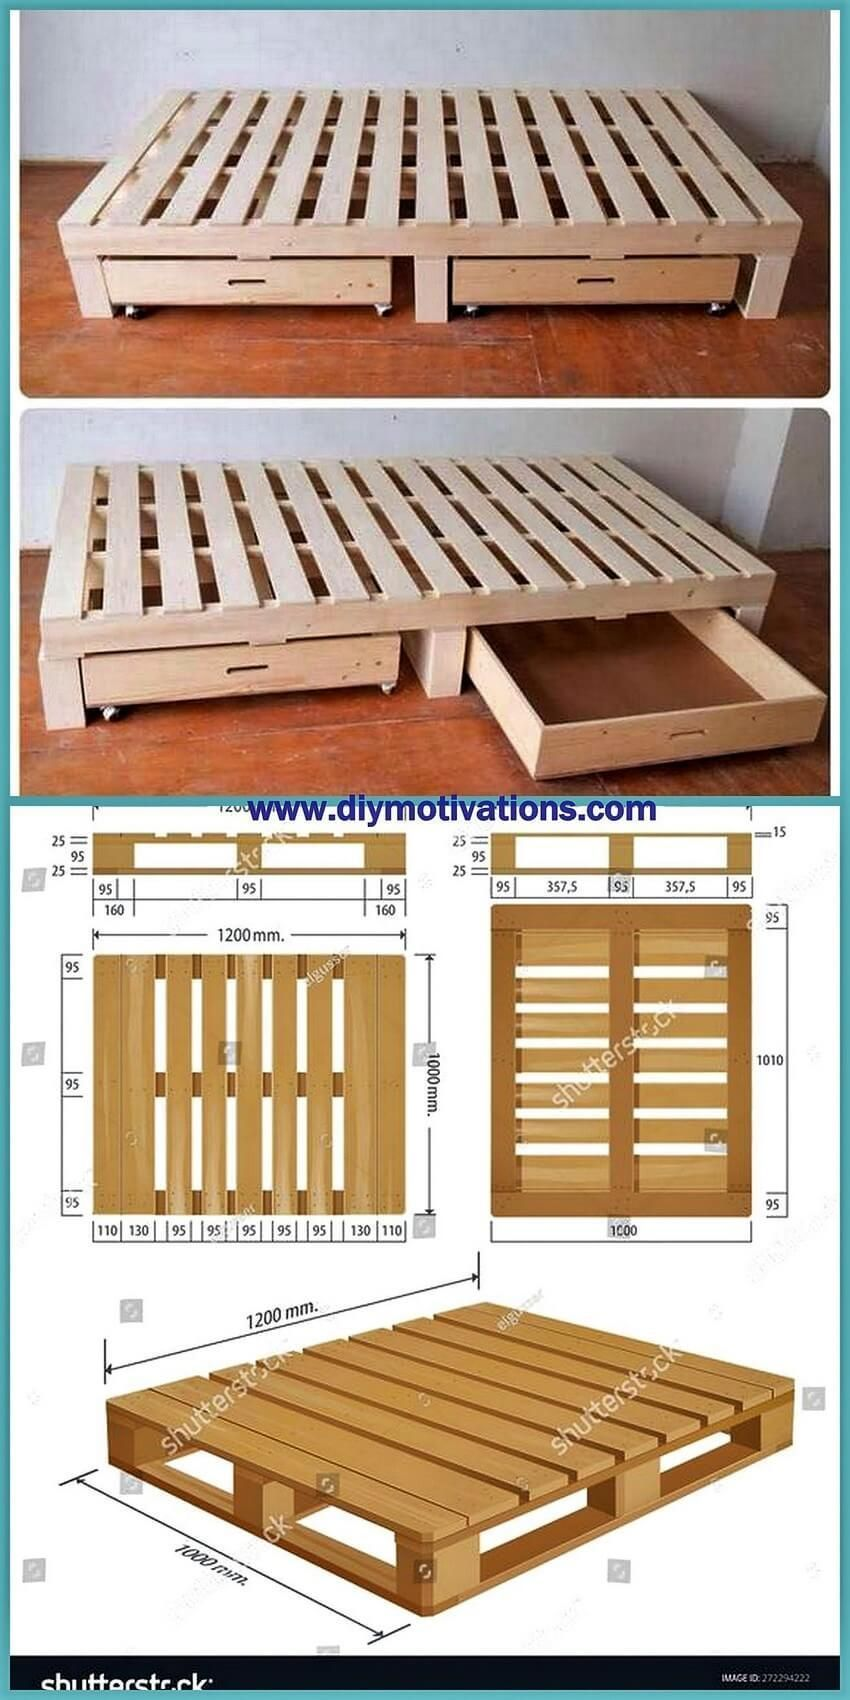 With the wooden pallet you can easily make beds of any size and for any ...#beds #easily #pallet #size #wooden